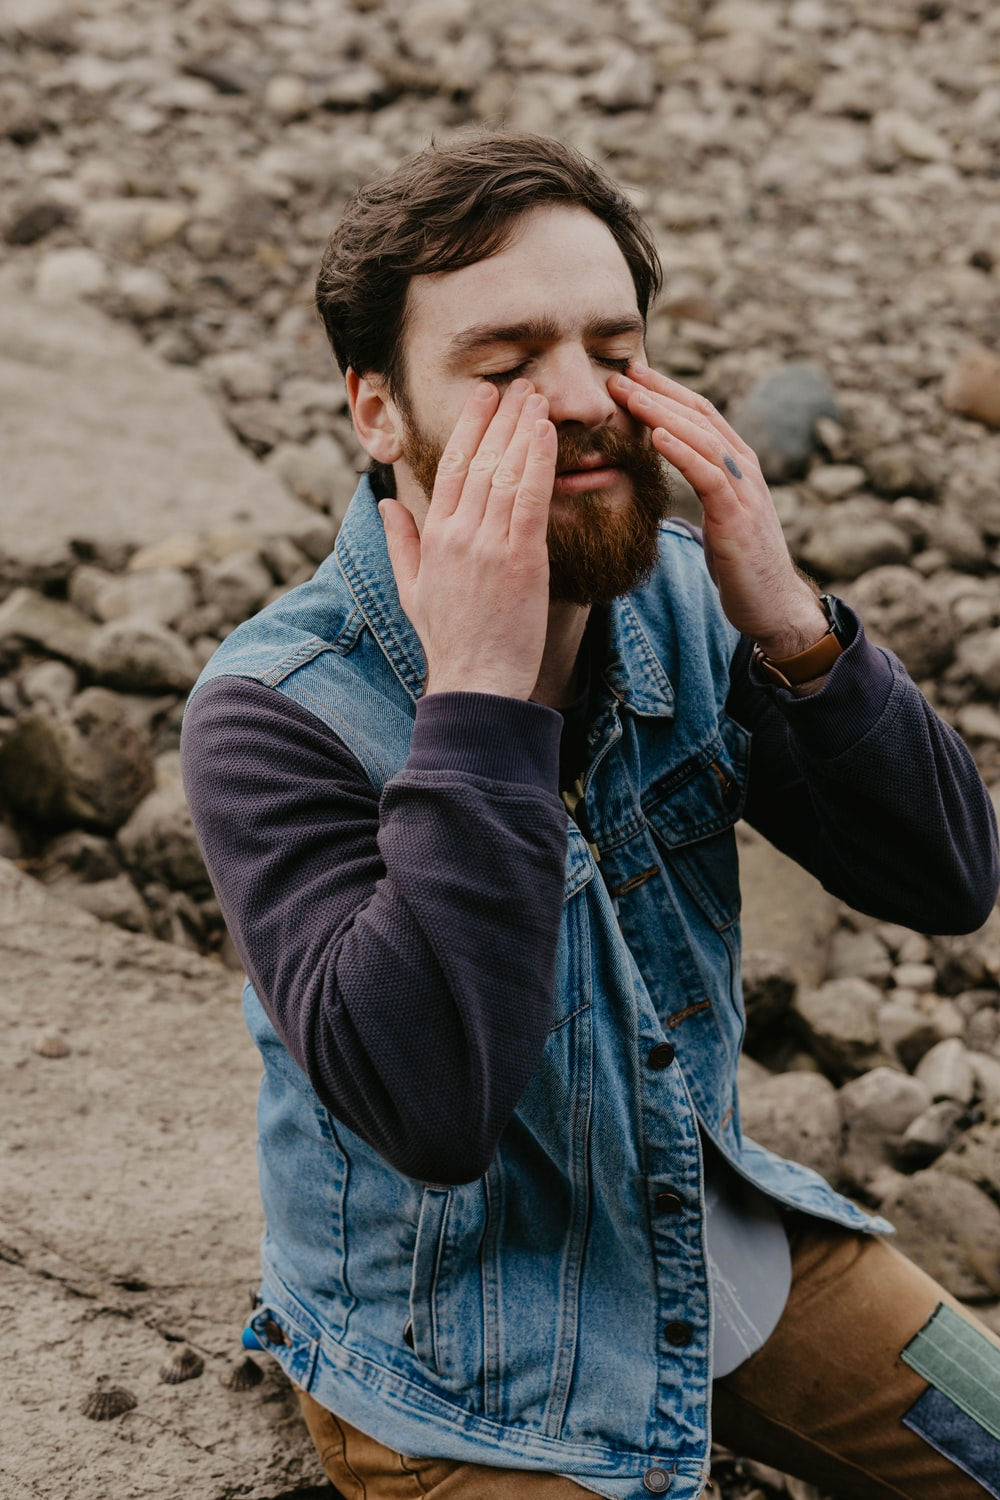 man in blue denim jacket covering his face with his hand